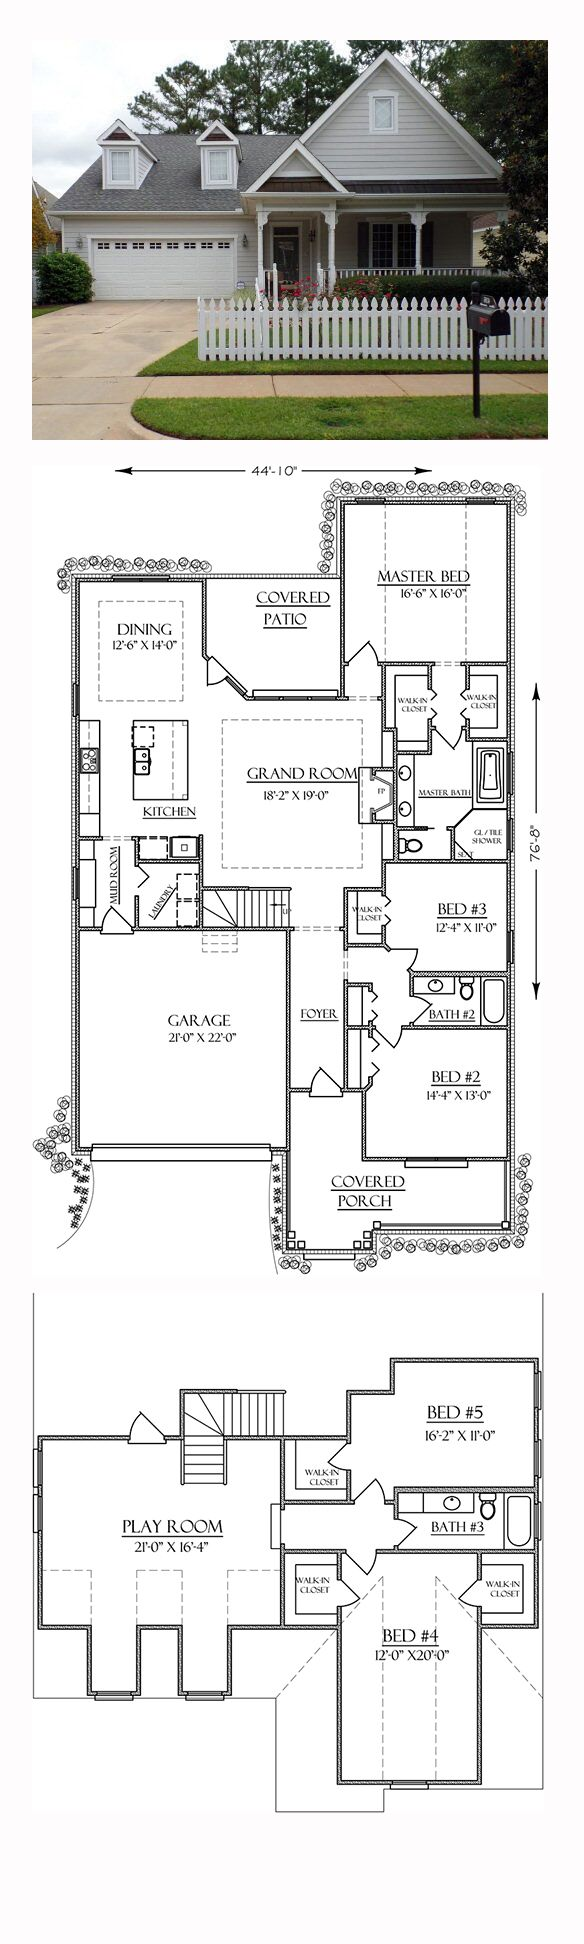 5 bedroom house floor plans. New House Plan 74756 Total Living Area  3162 sq 5 bedrooms and 3 bathrooms Best 25 bedroom house plans ideas on Pinterest 4